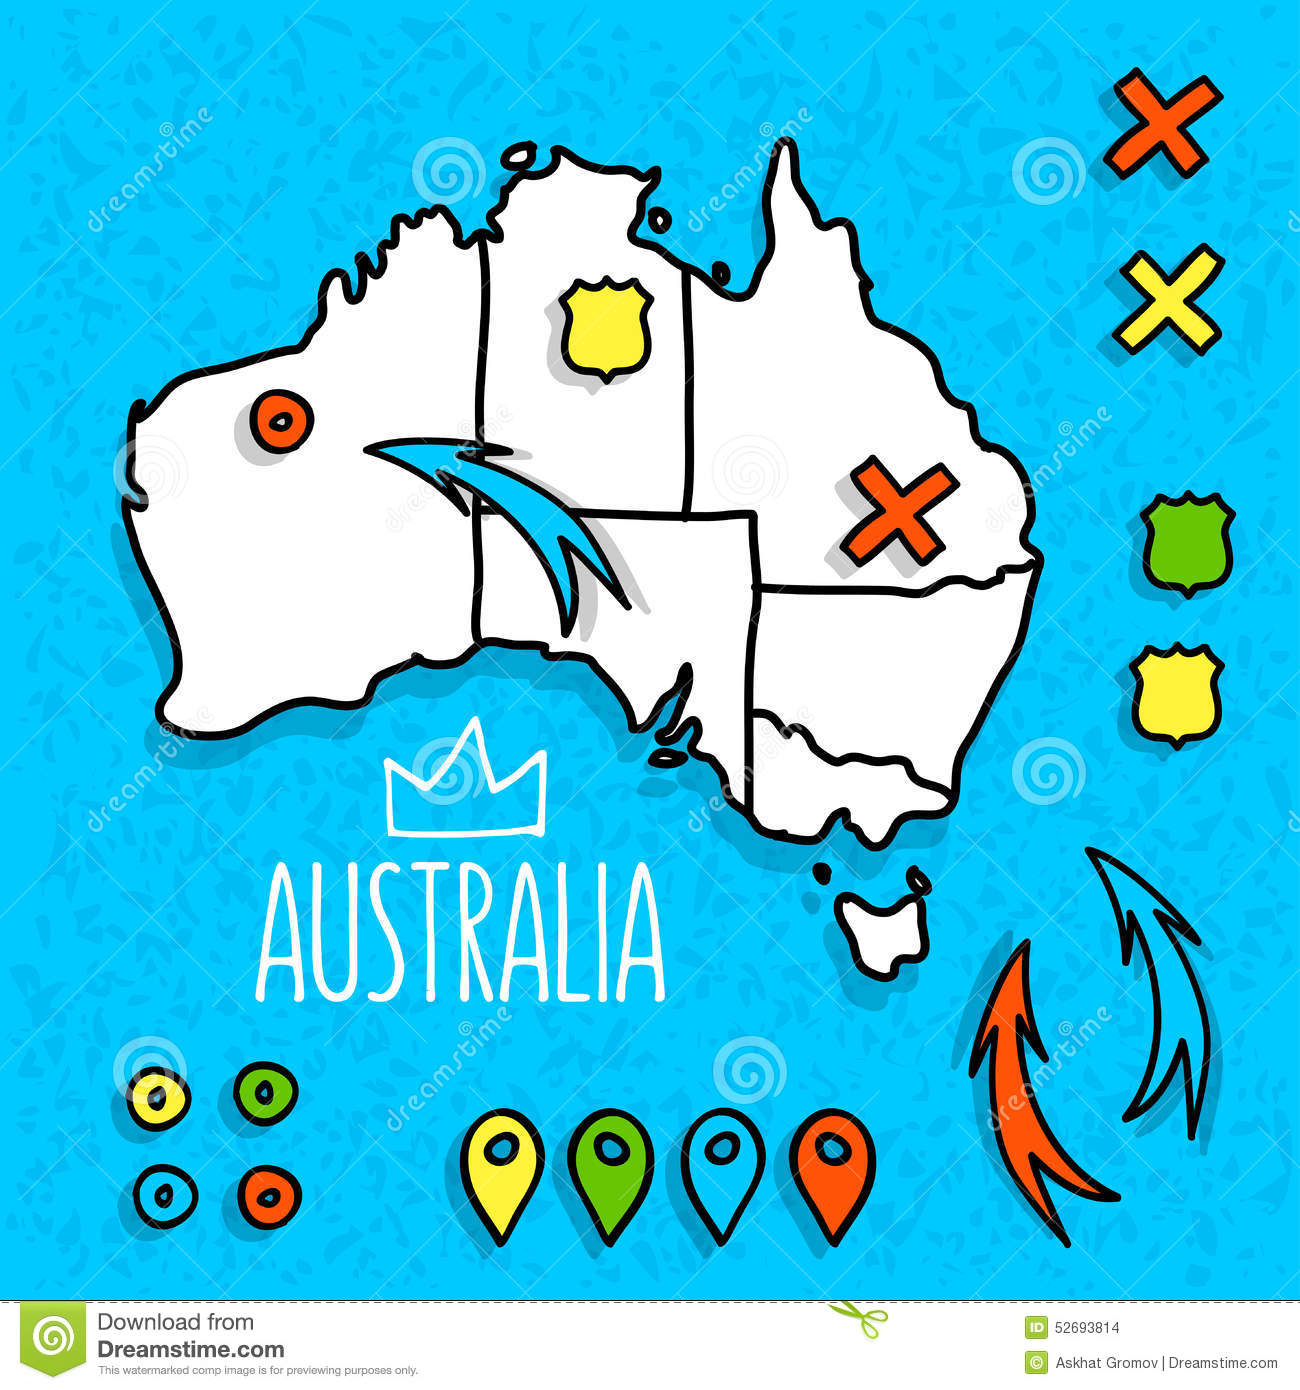 Australia Travel Map Poster Vector Image 69310516 – Travel Maps Australia